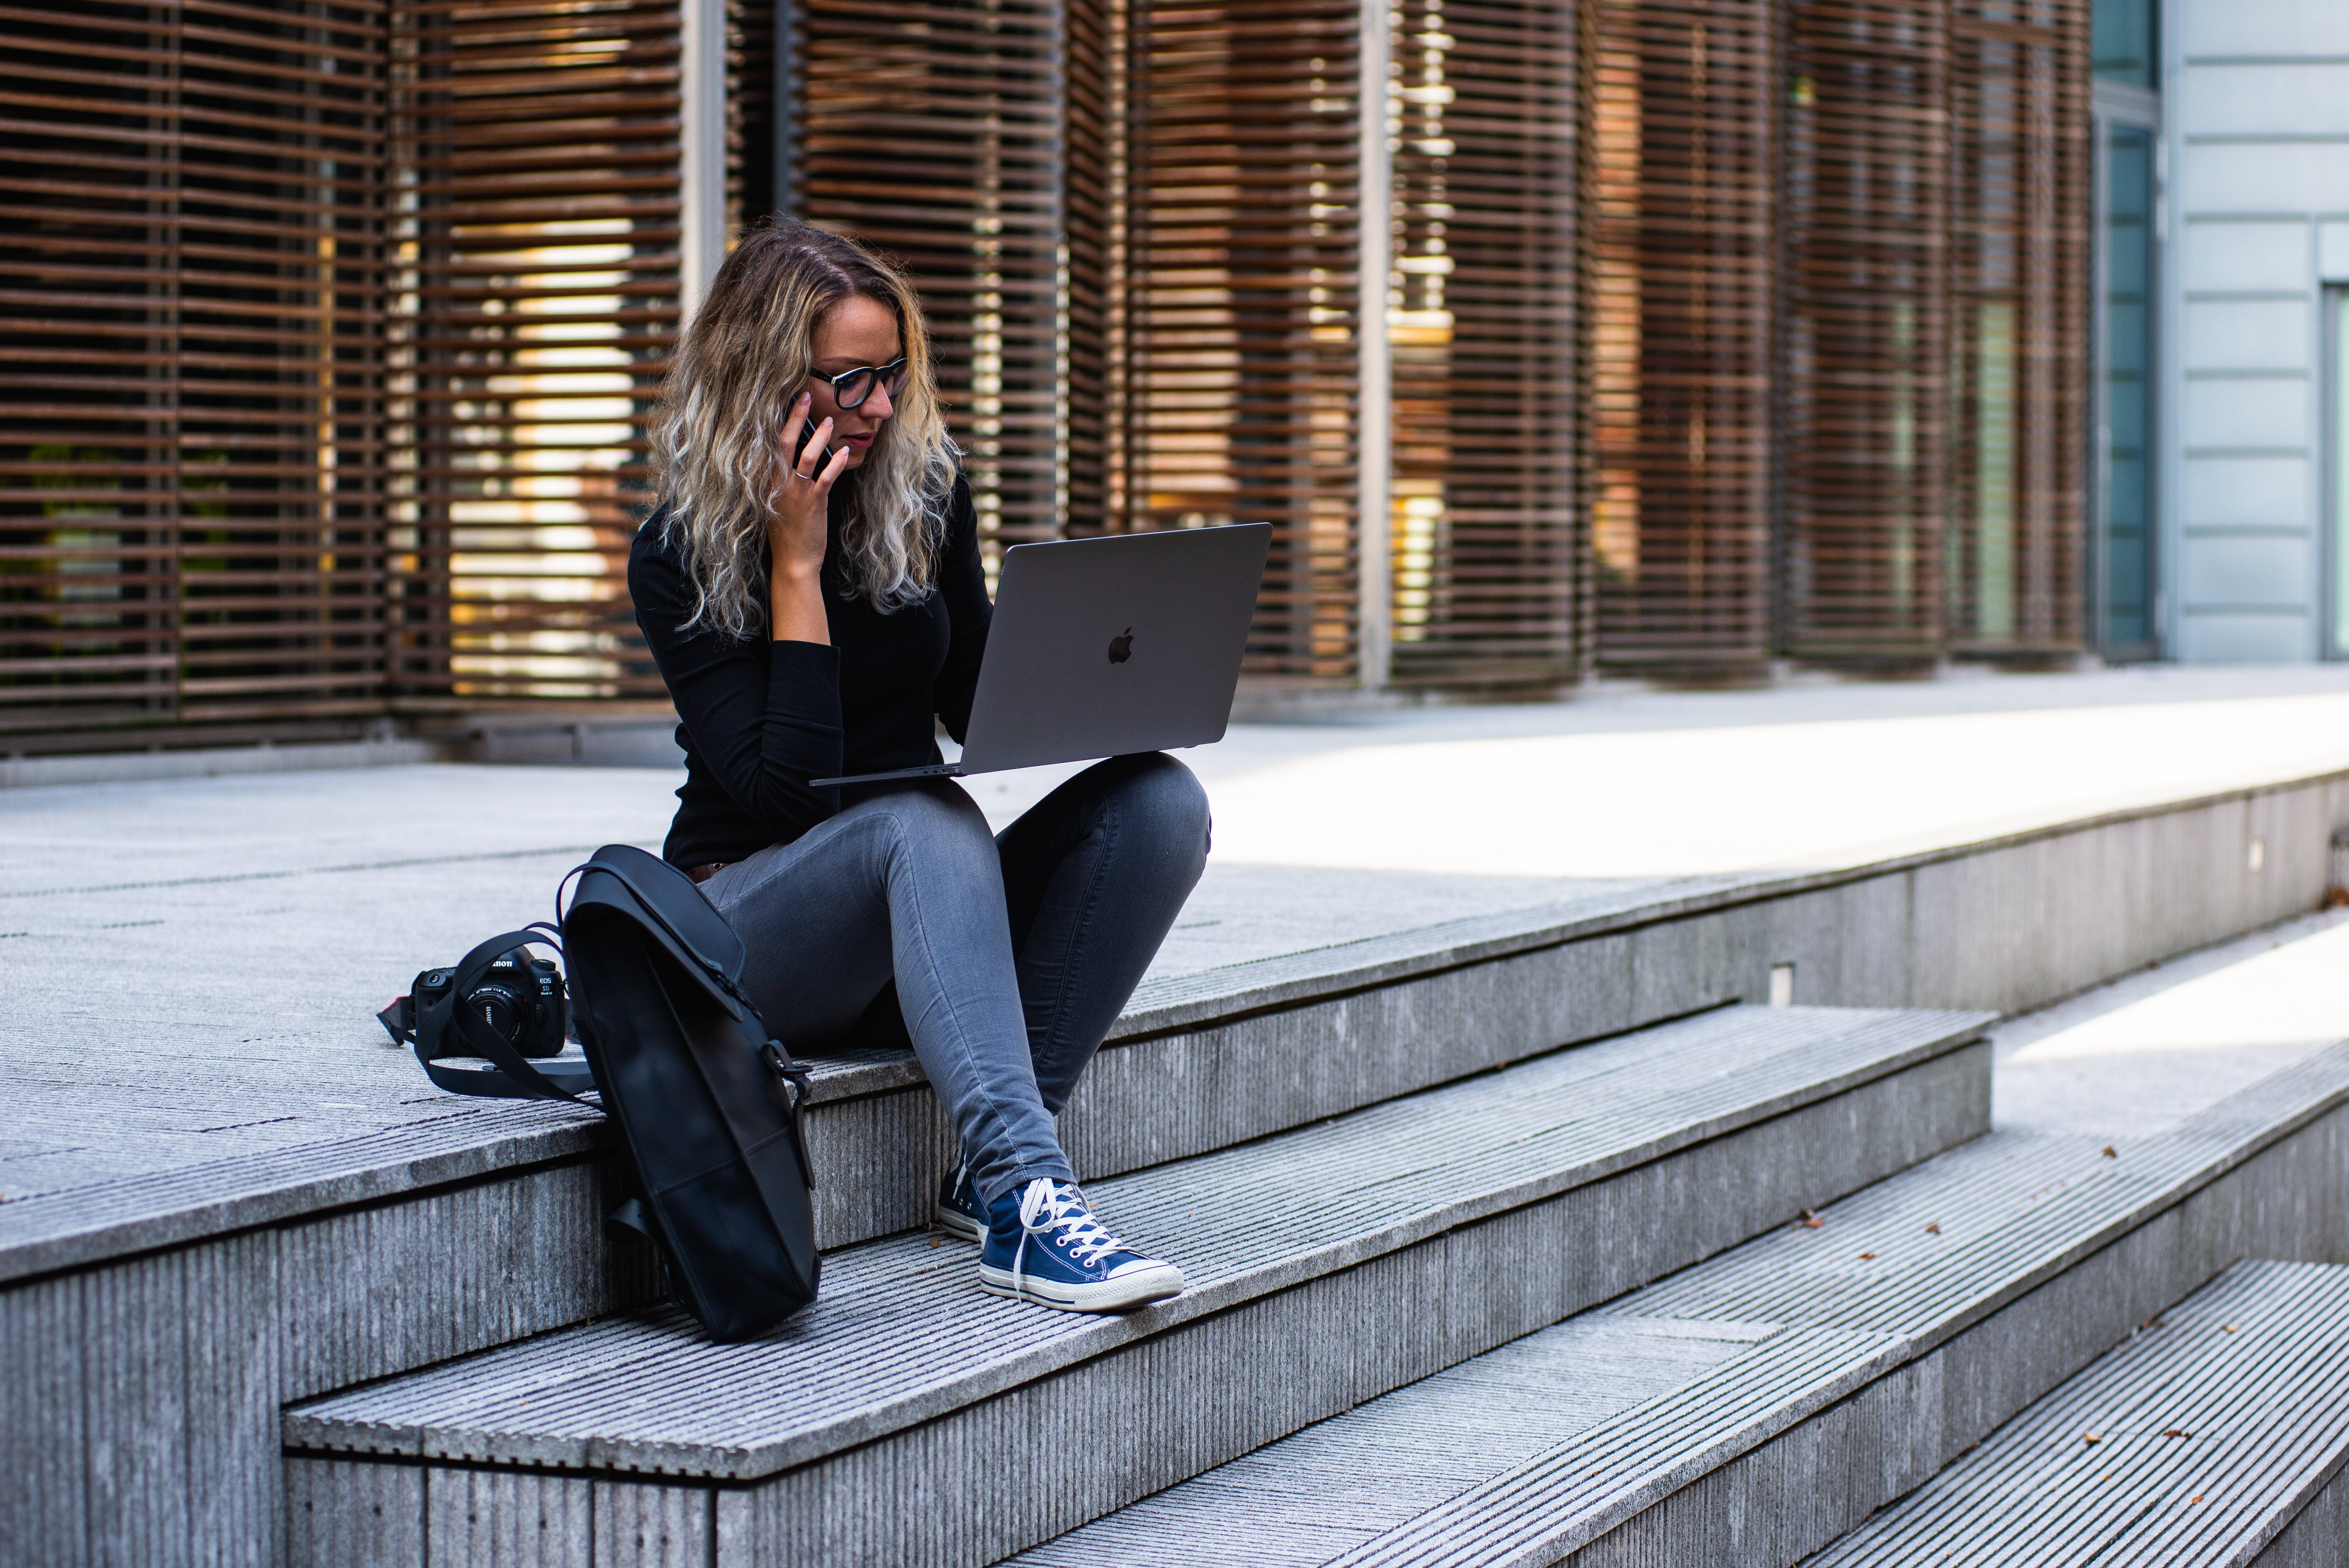 Woman Sitting on Stairs While Using Laptop